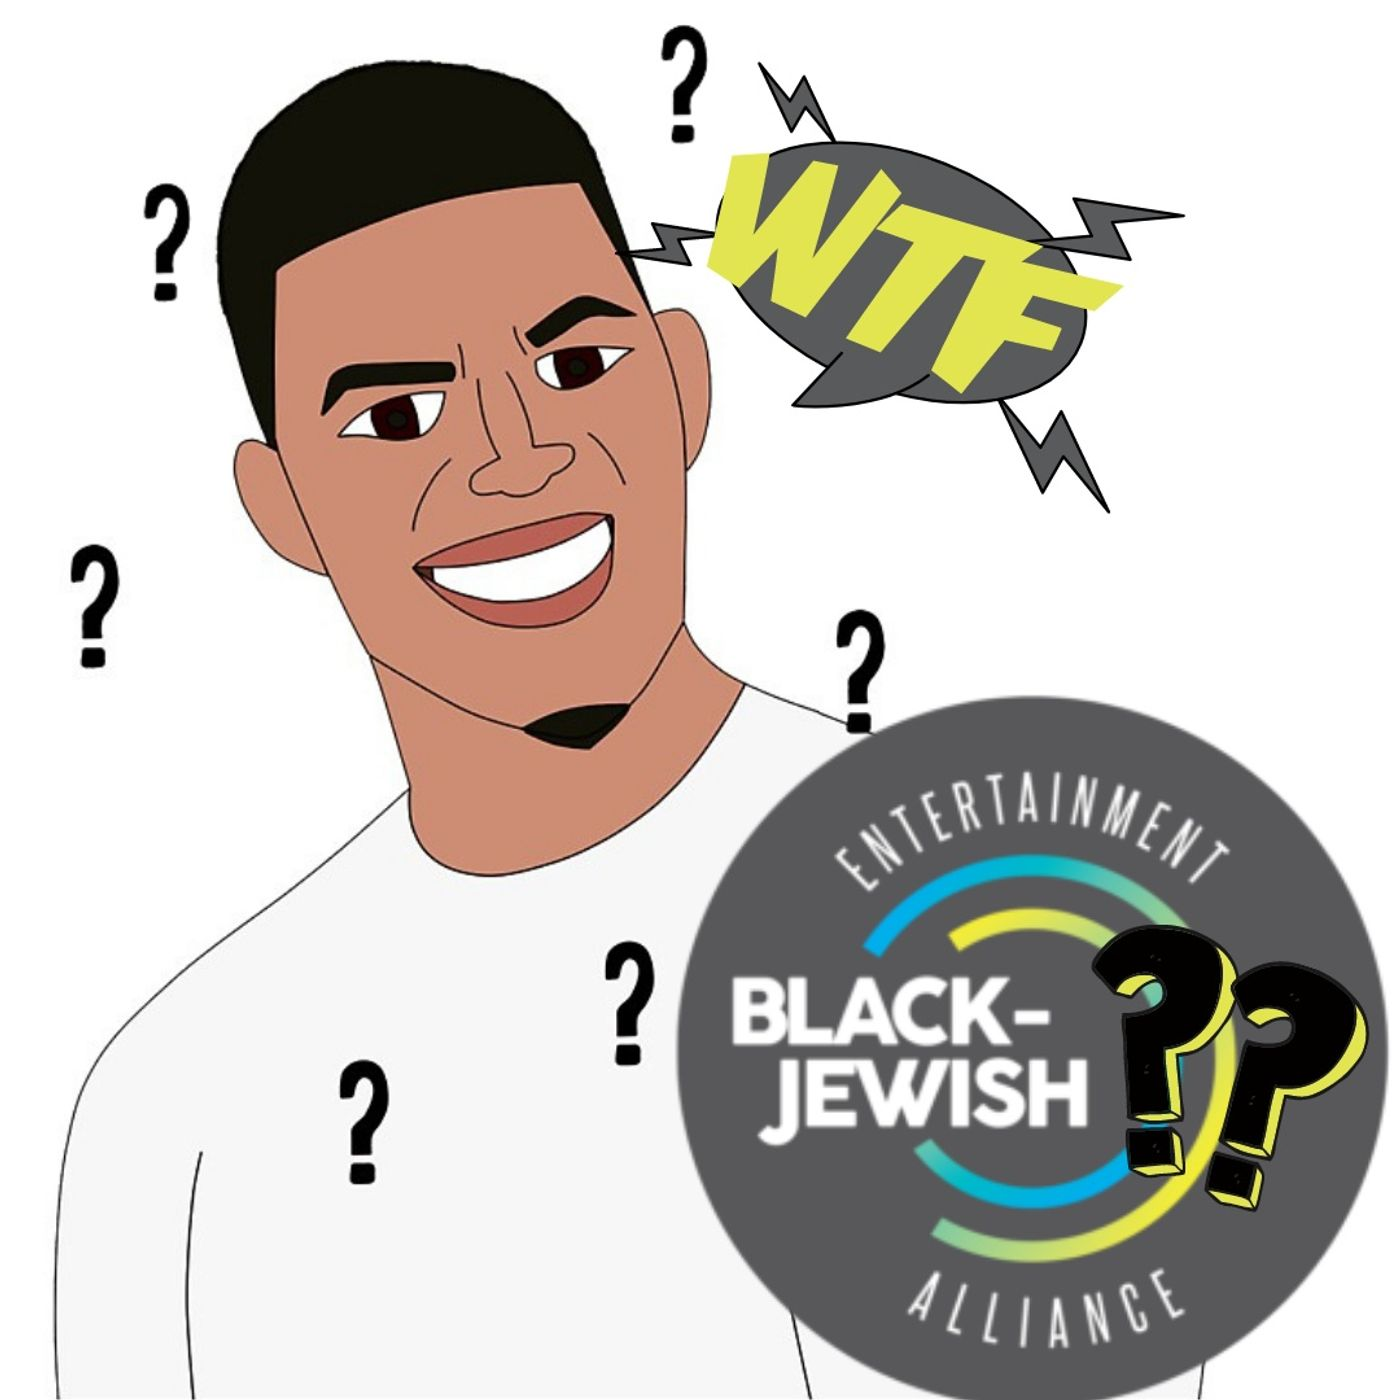 Episode 92- The Black-Jewish Hollywood Alliance